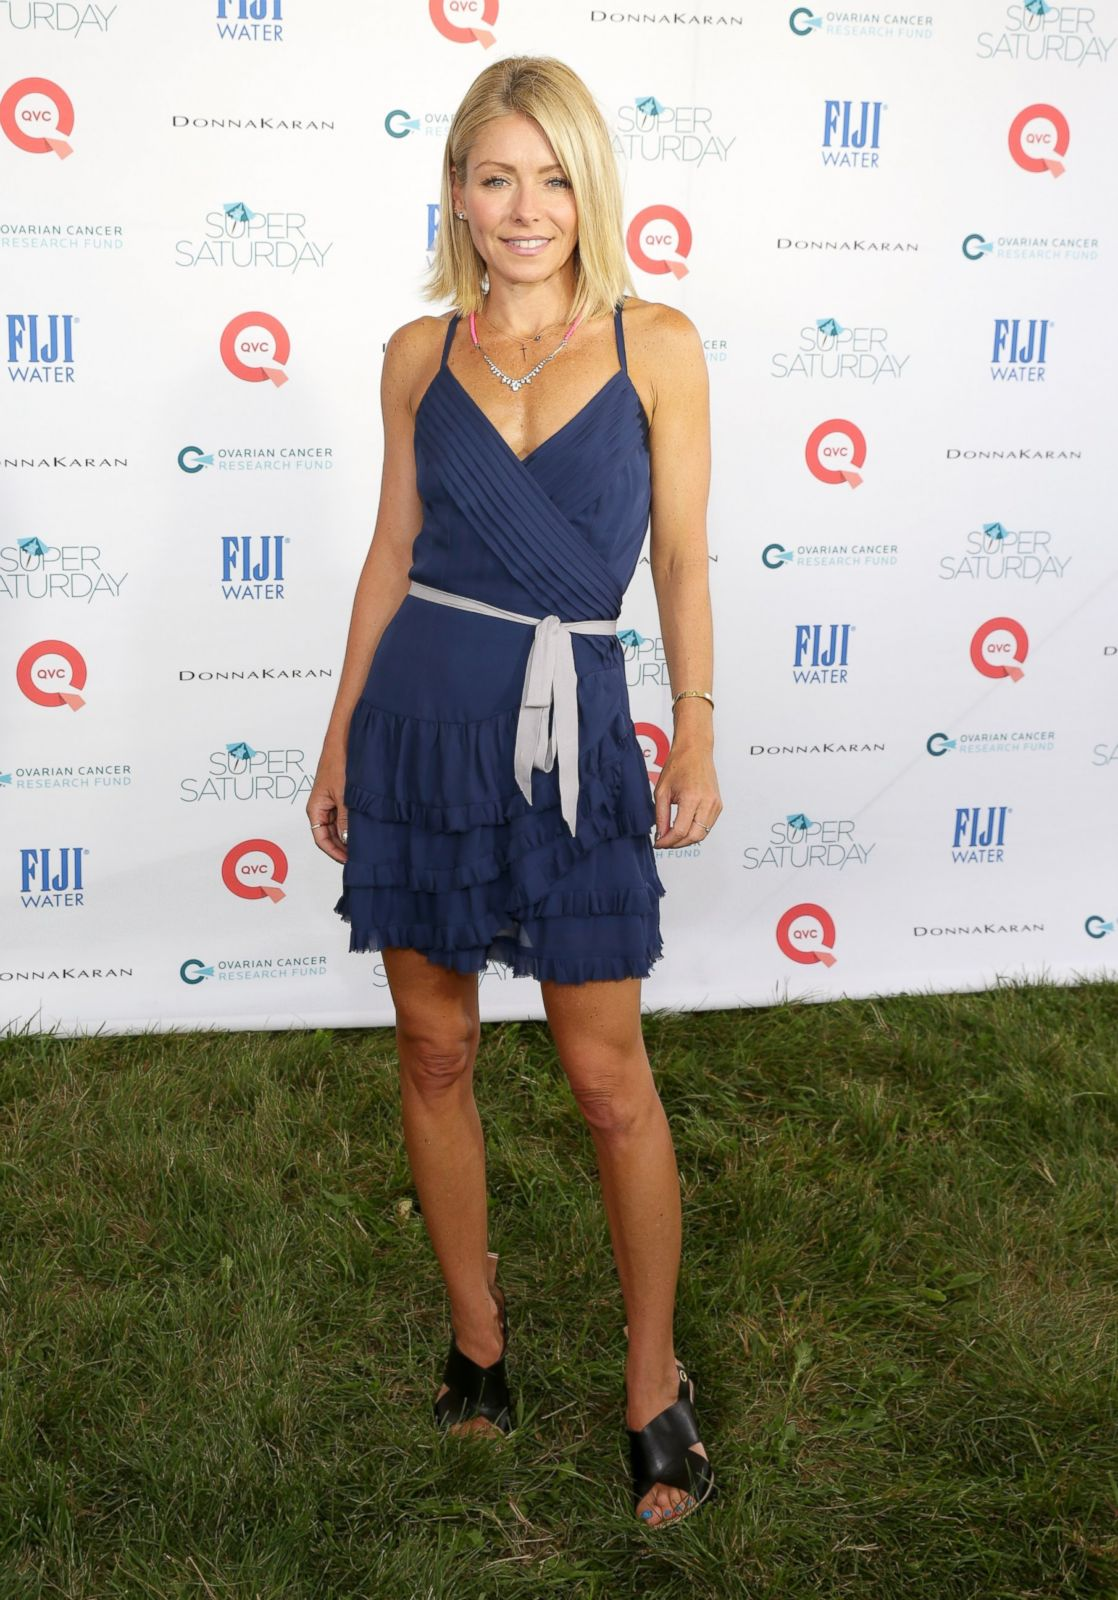 Kelly Ripa Biography An Actress, A Talk Show Host, And A -4032